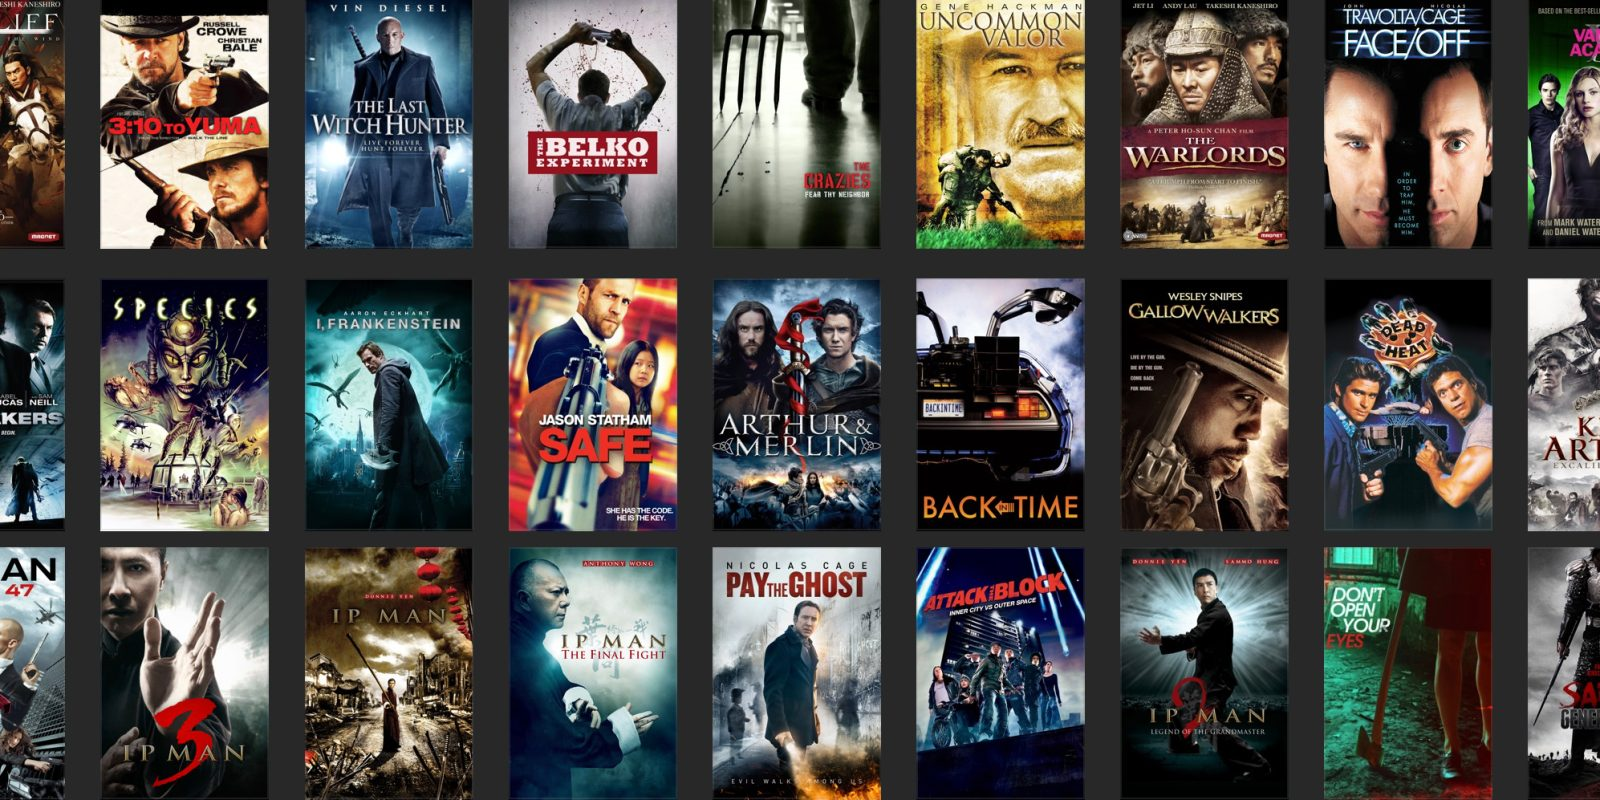 Apple's latest $5 weekend movie sale covers every genre at new all-time lows